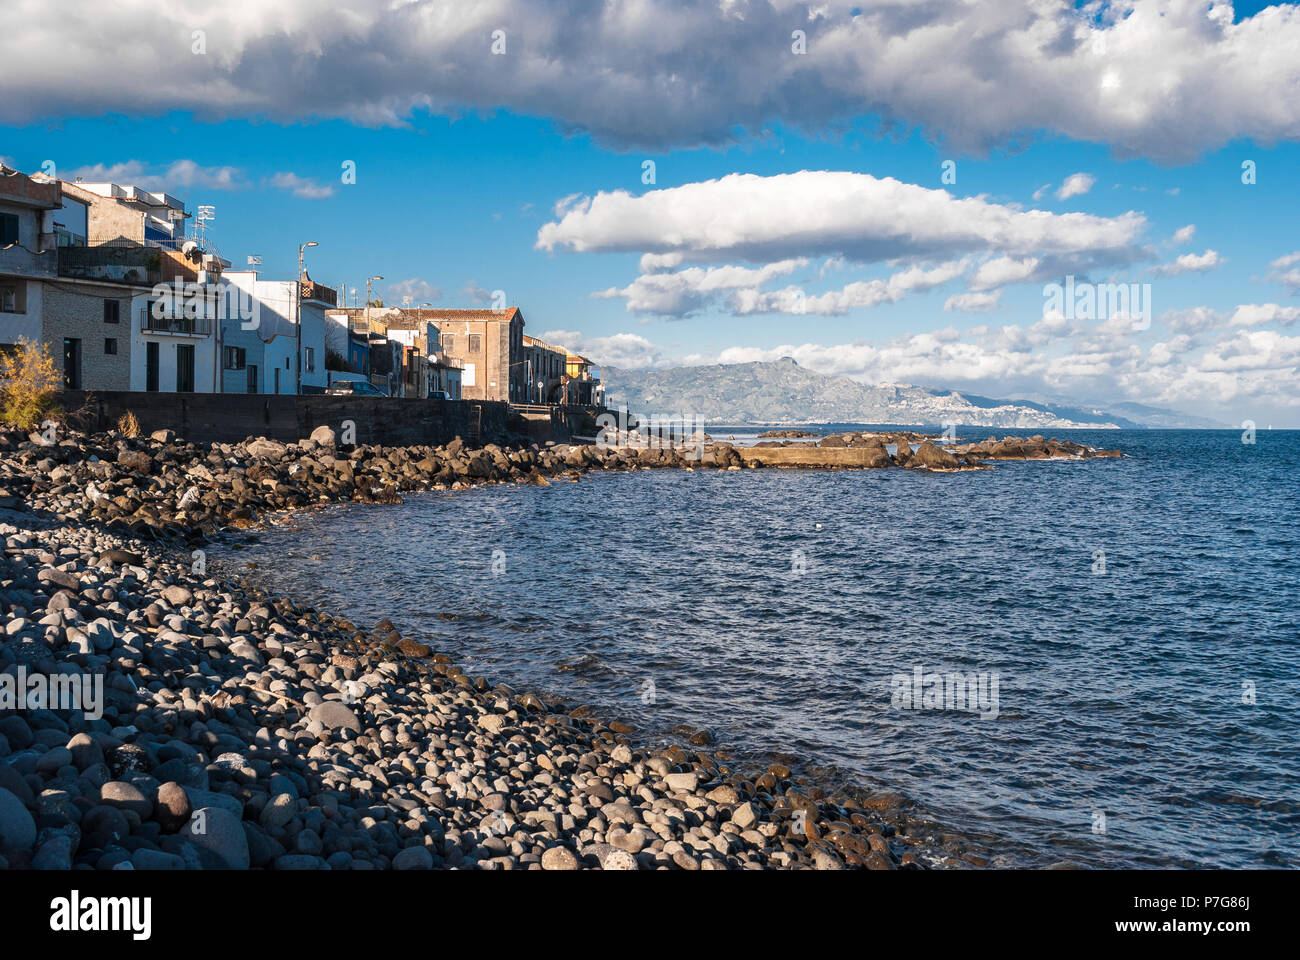 The small sea village of Torre Archirafi (Catania, Sicily) with its typical rocky beach - Stock Image